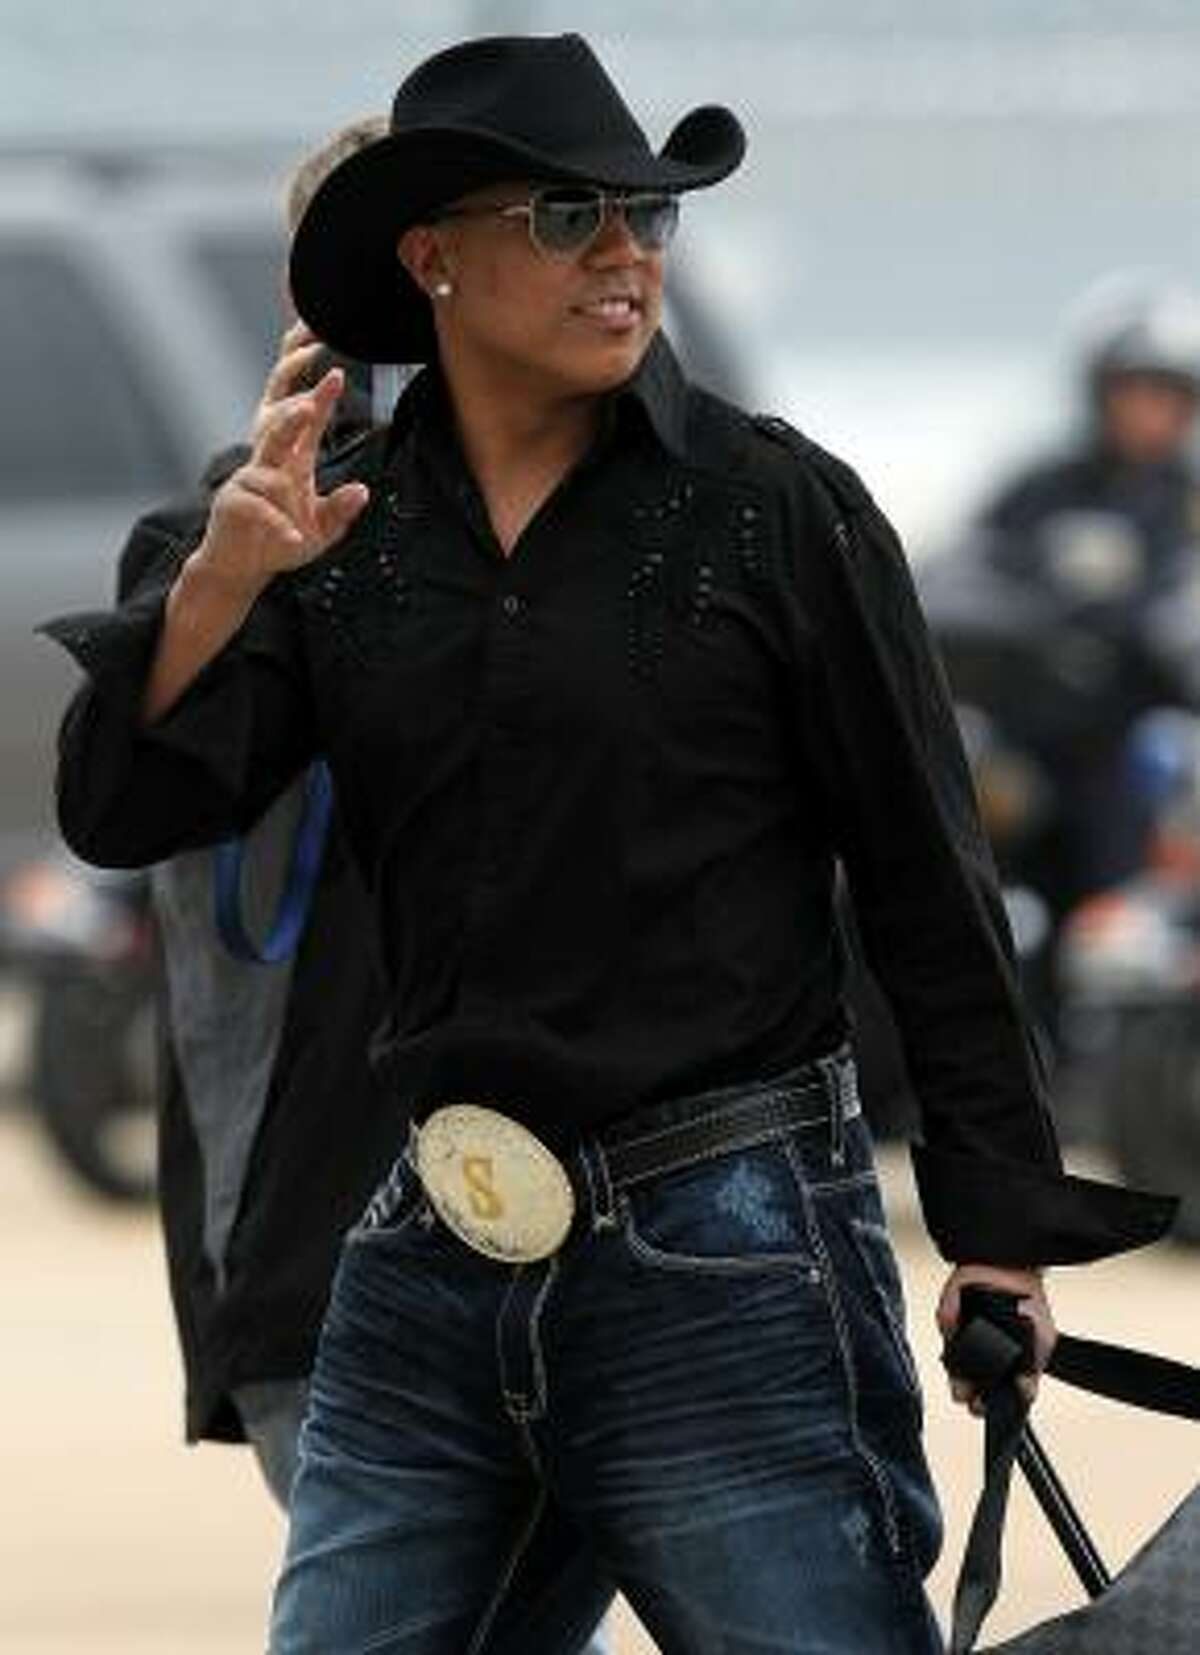 Wide receiver Hines Ward of the Steelers walks to the team bus after arriving in Dallas.